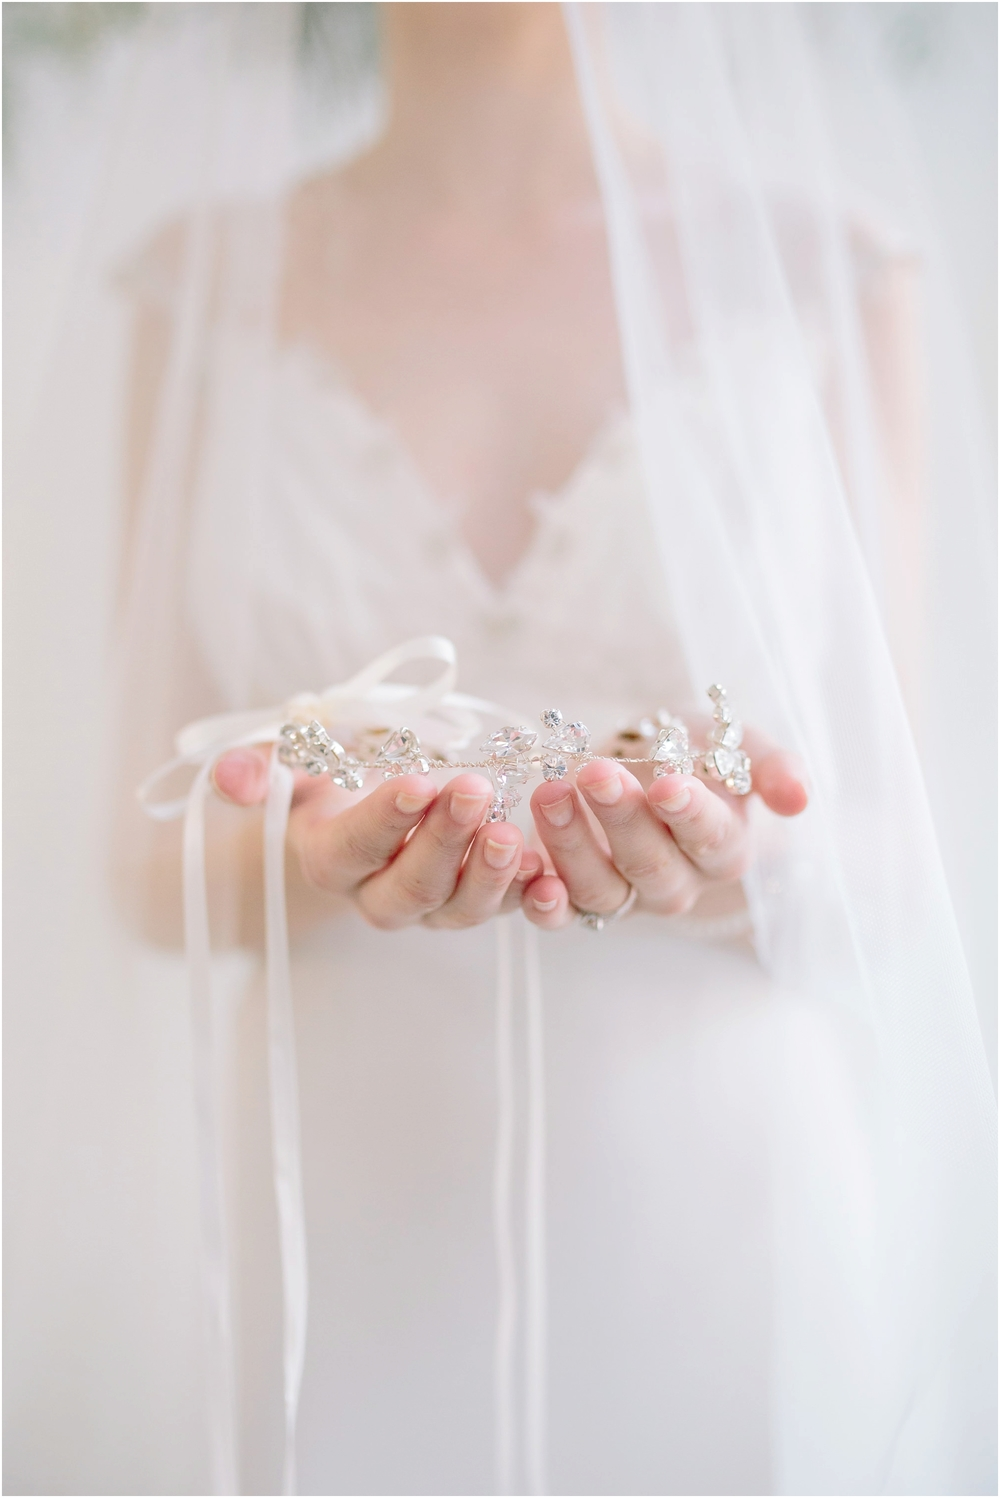 suzanne_li_photography_bridal_accessories_susan_dick_0005.jpg